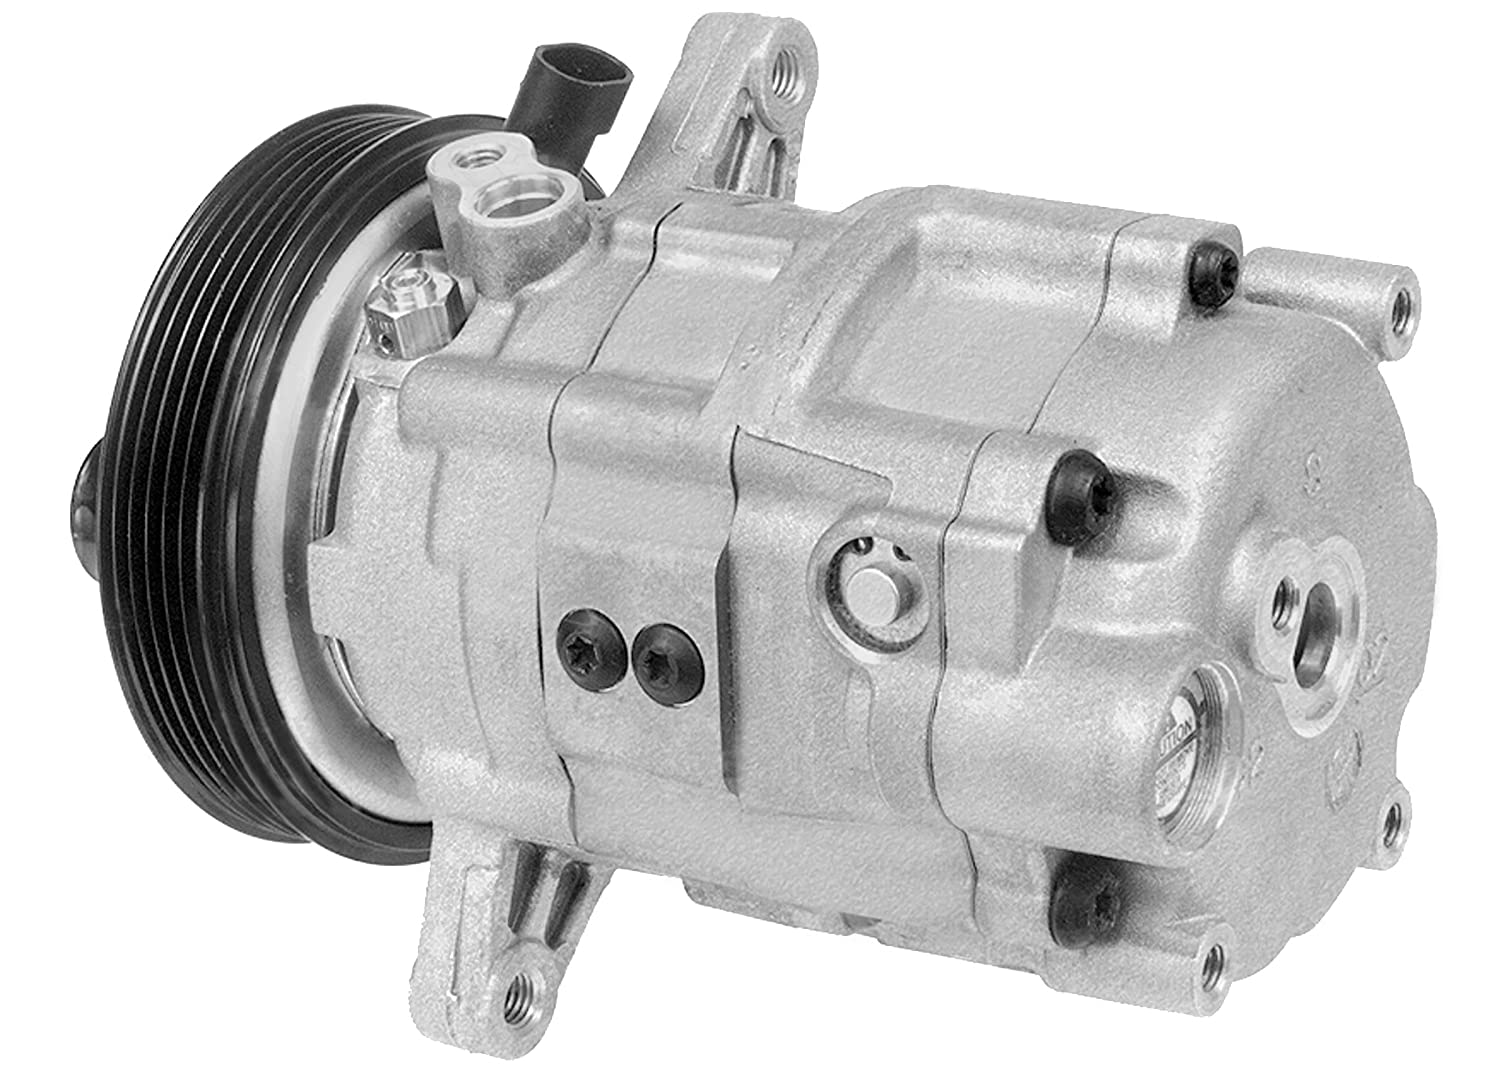 Remanufactured ACDelco 15-21475 Professional Air Conditioning Compressor